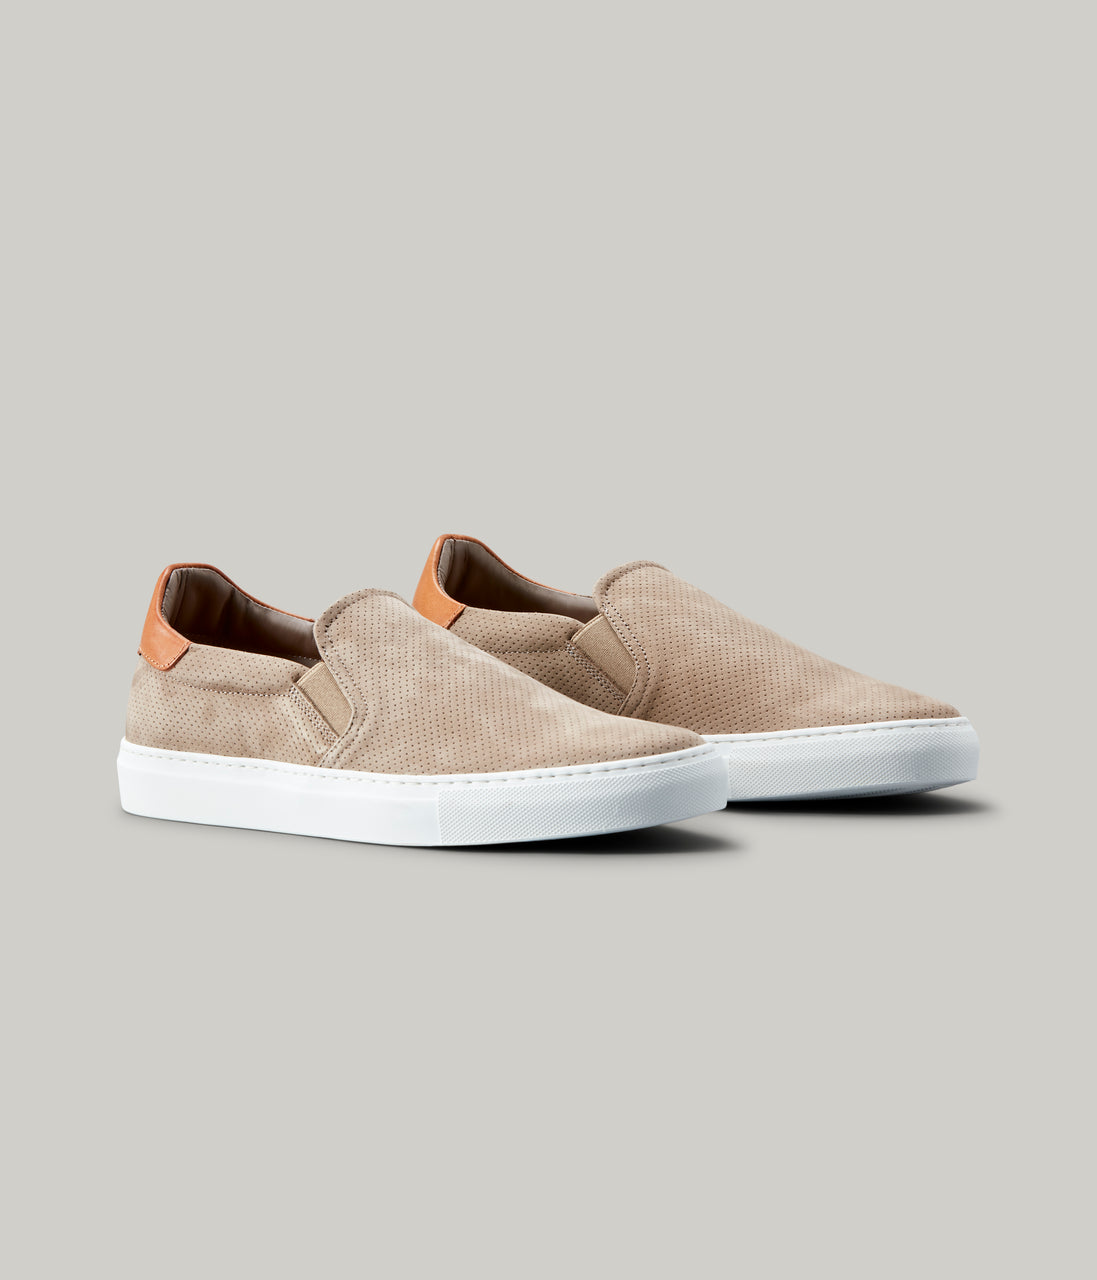 Legend Slip-On Nubuck Pref Sneaker - Sand/Vachetta - Good Man Brand - Legend Slip-On Nubuck Pref Sneaker - Sand/Vachetta